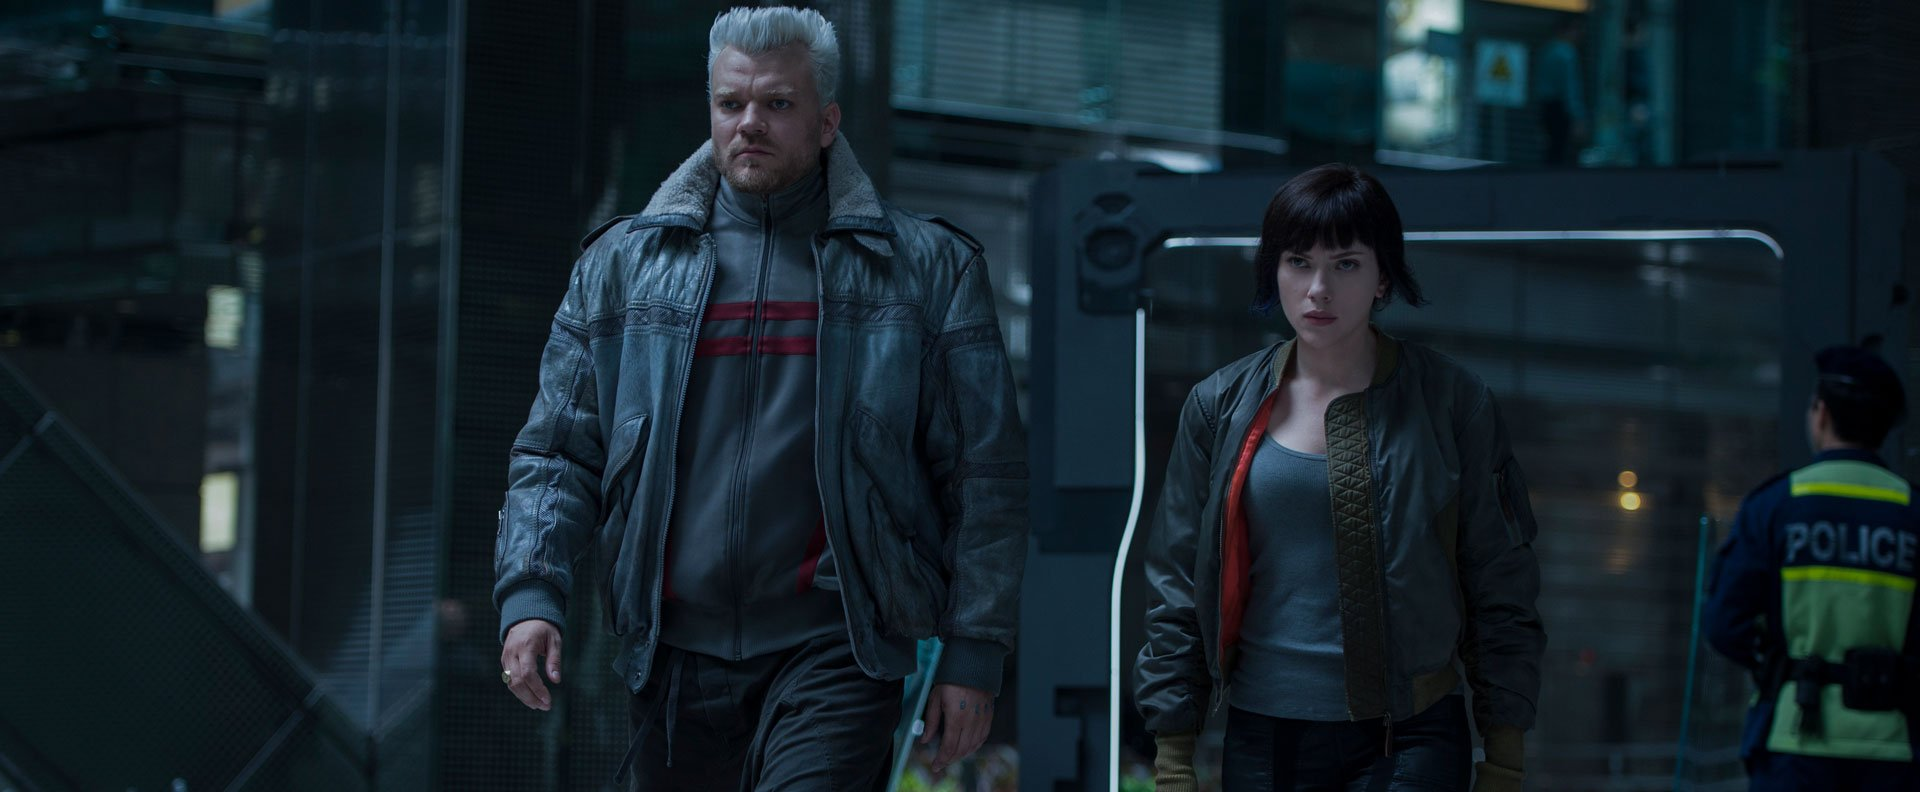 Привид у броні / Ghost in the Shell (2017)